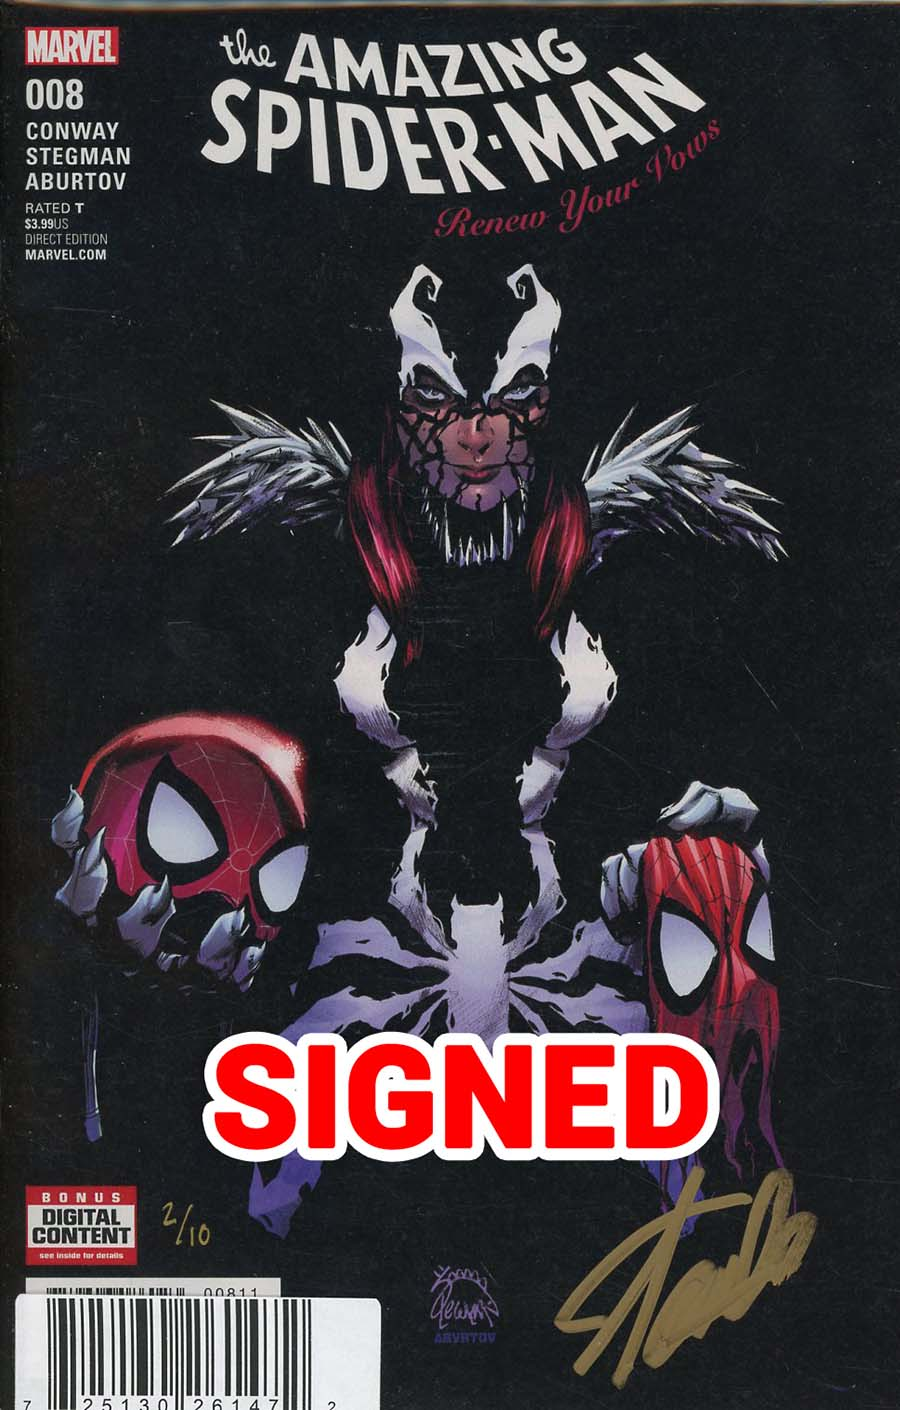 Amazing Spider-Man Renew Your Vows Vol 2 #8 Cover E DF Gold Elite Signature Series Signed By Stan Lee